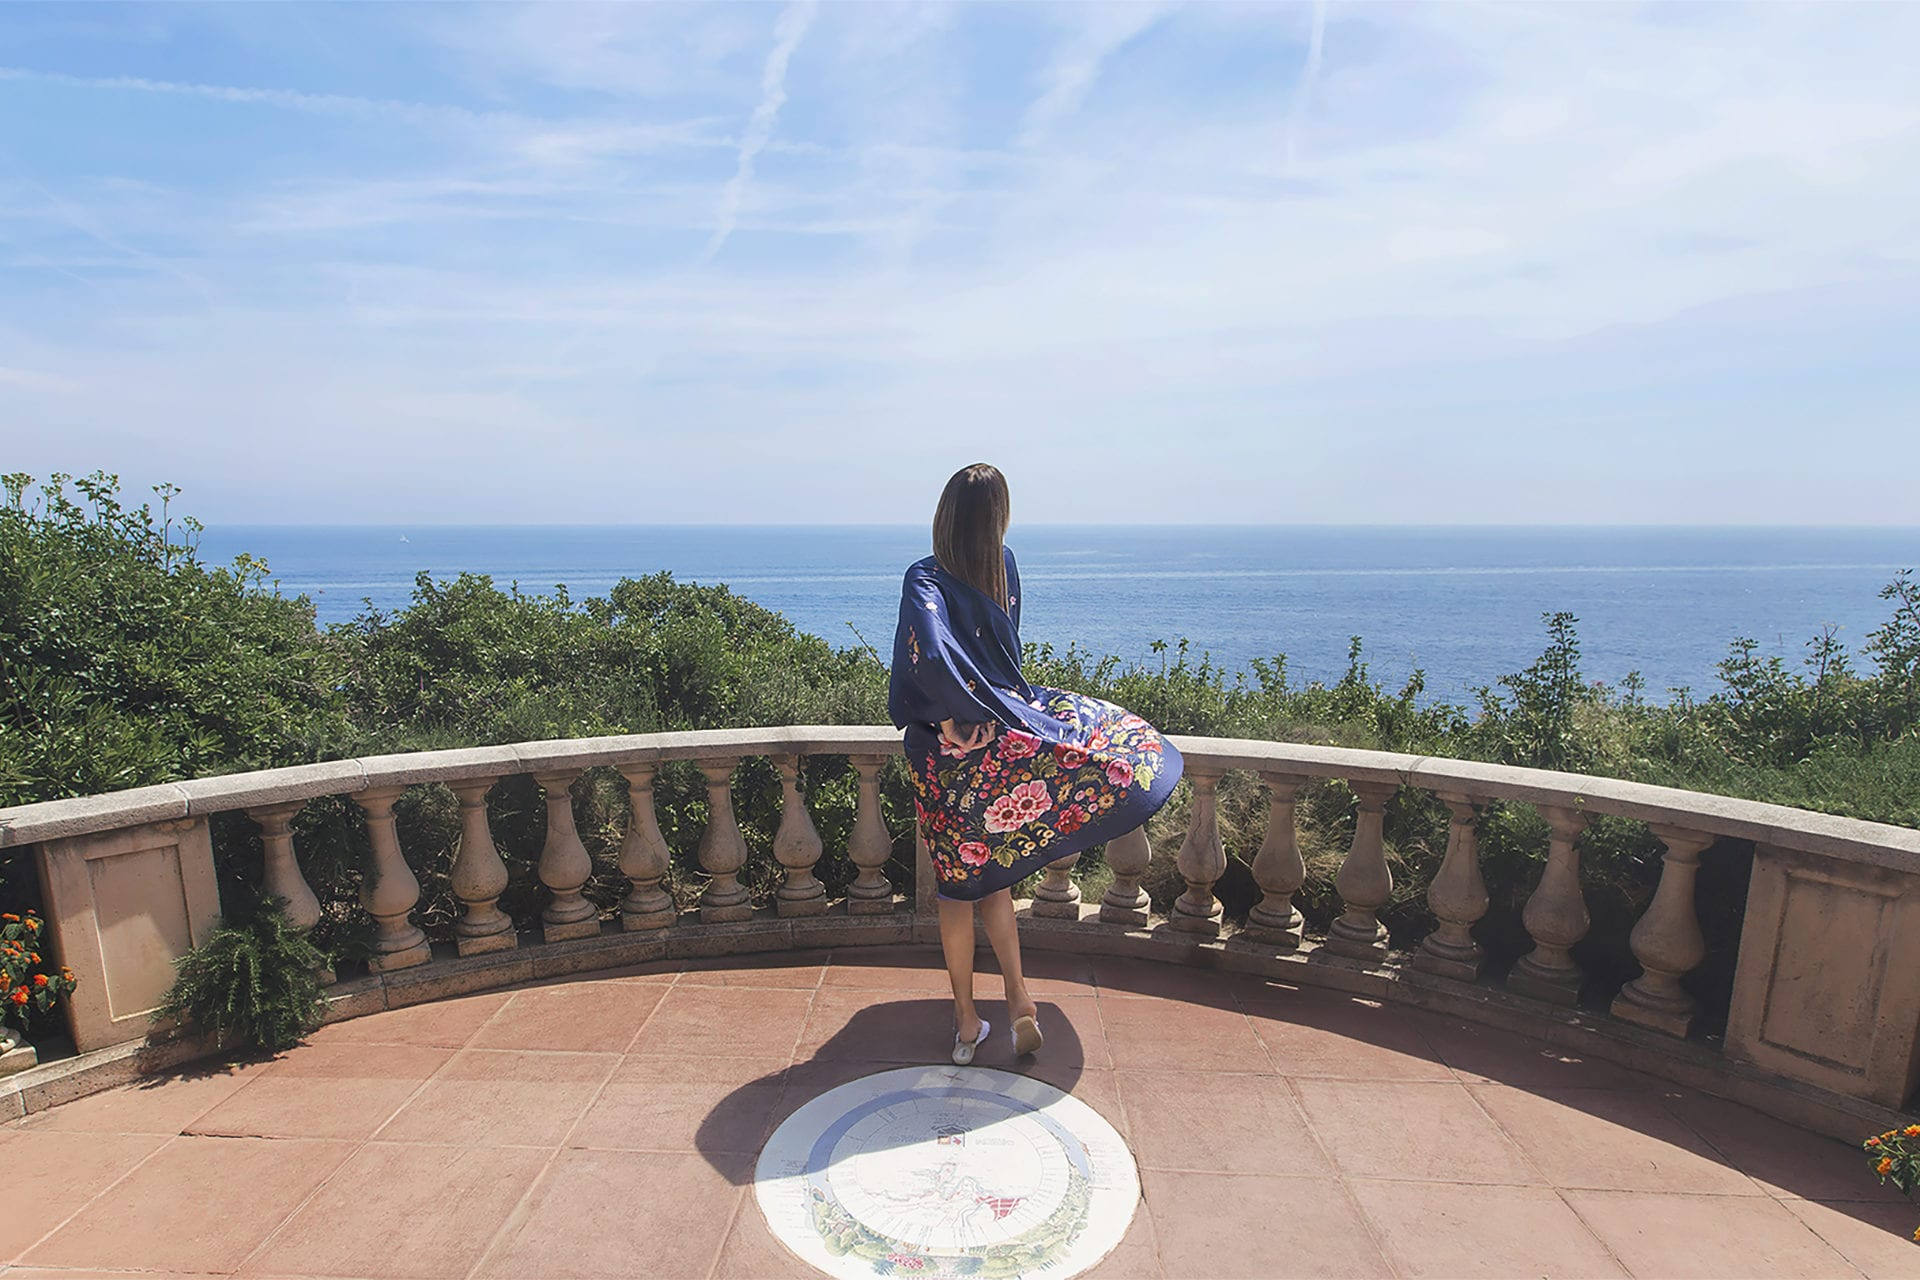 French Riviera views from Grand-Hotel du Cap-Ferrat a Four Seasons Hotel